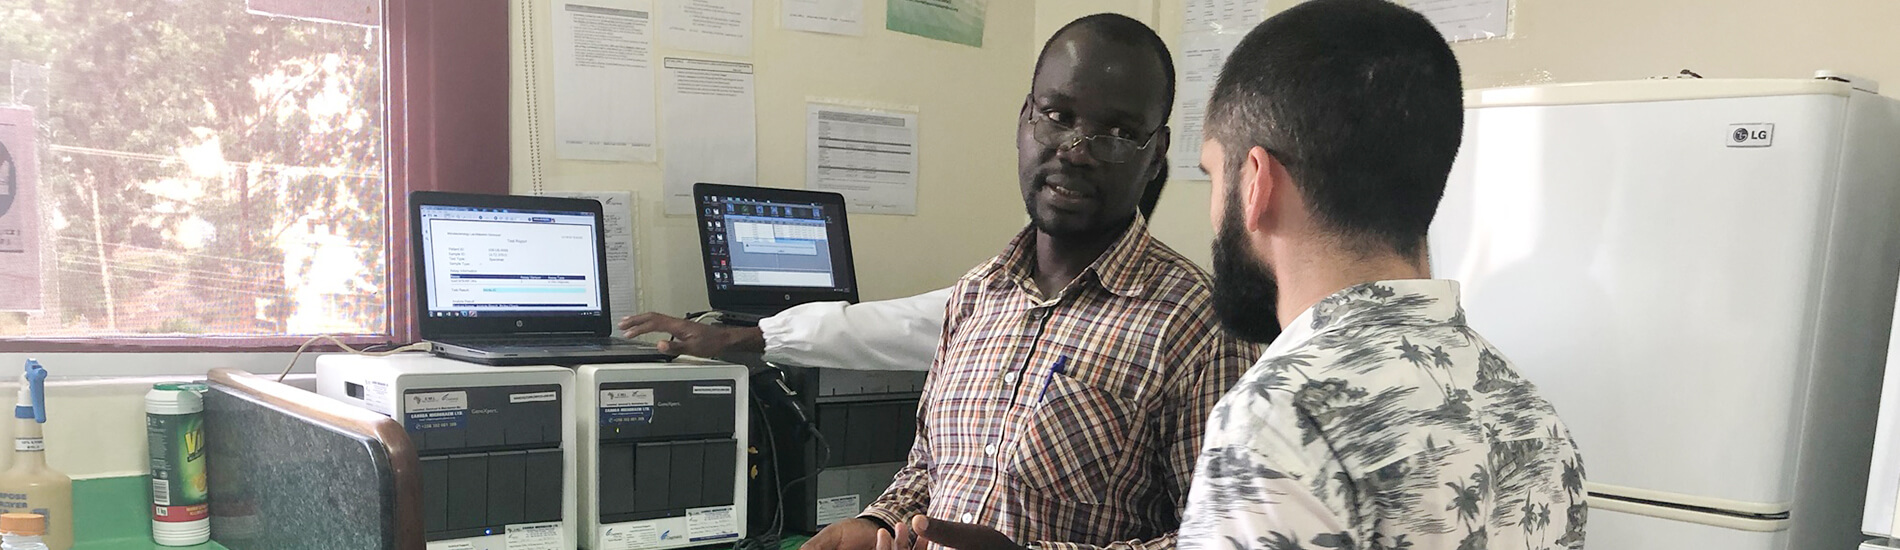 Scottish clinical and scientific experts are spearheading a campaign to bust myths and combat misinformation in the battle against Covid-19 in Uganda.